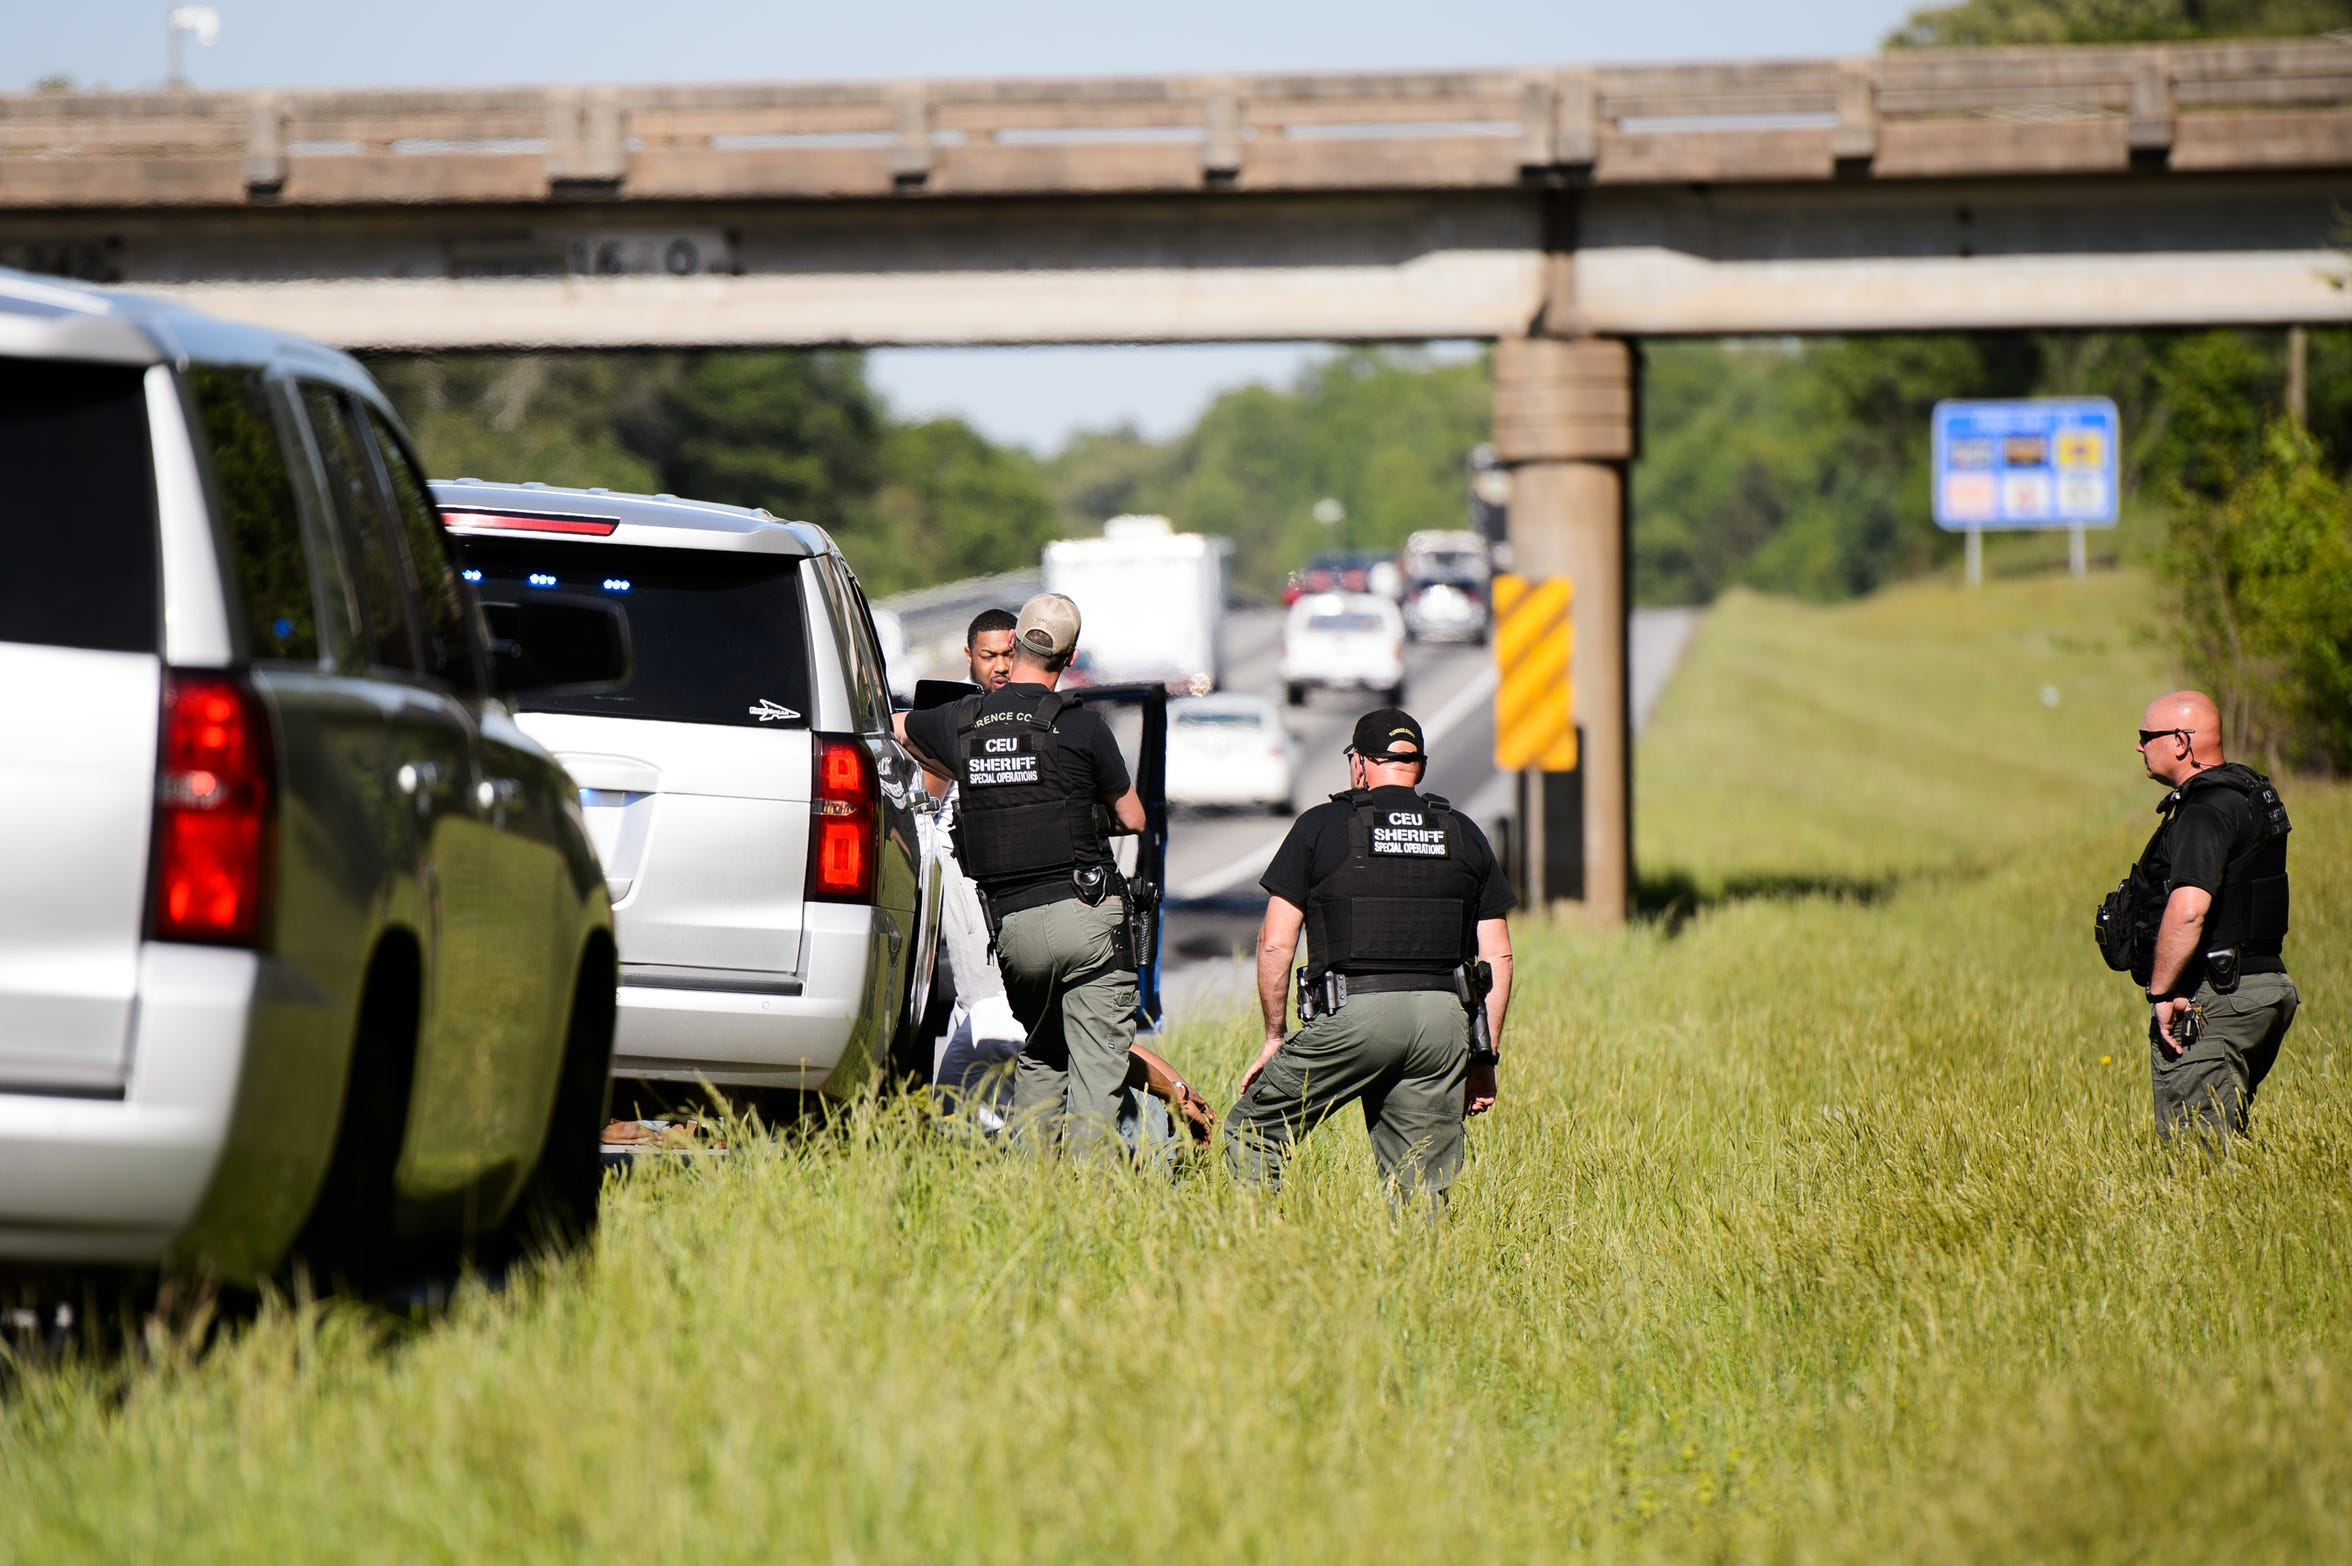 Law enforcement officers search a vehicle on Interstate 85. On average, officers search every fifth stopped car during Rolling Thunder 2018 — hundreds of vehicles in all. They bring in a drug-sniffing dog 128 times They make 40 arrests, 25 of them for felony offenses.